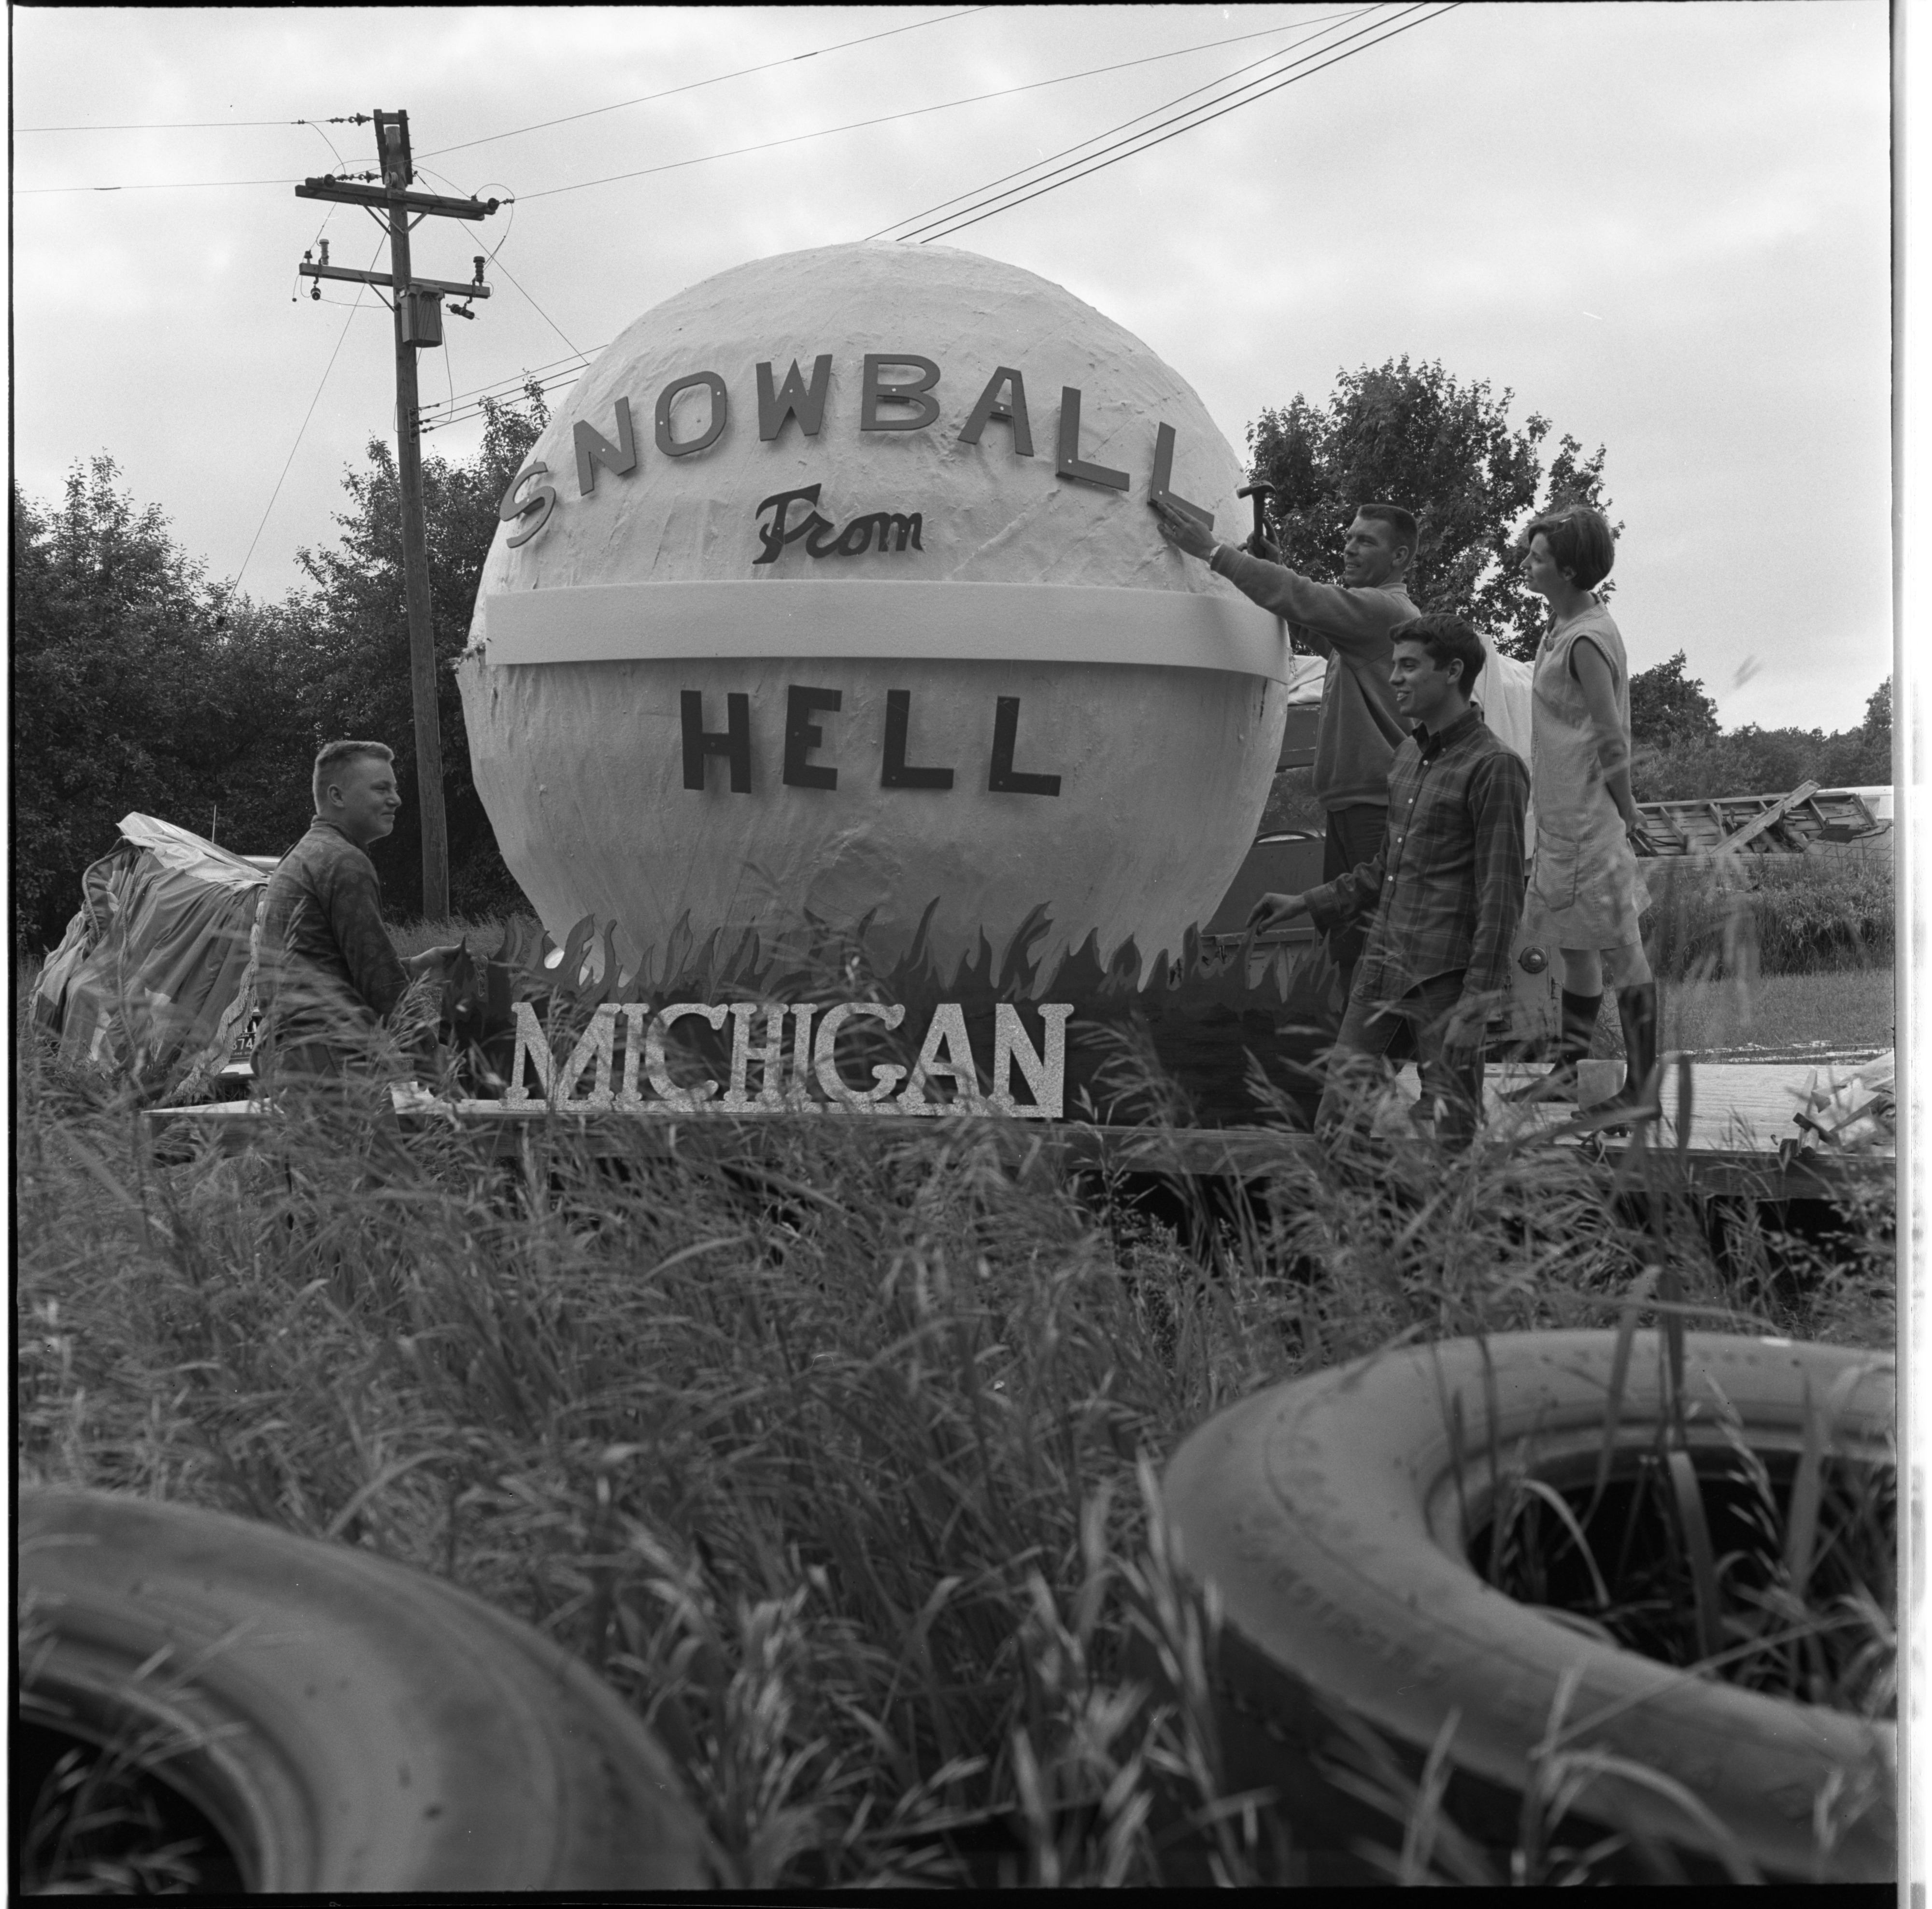 400 Pound 'Snowball From Hell' Going South, June 1969 image